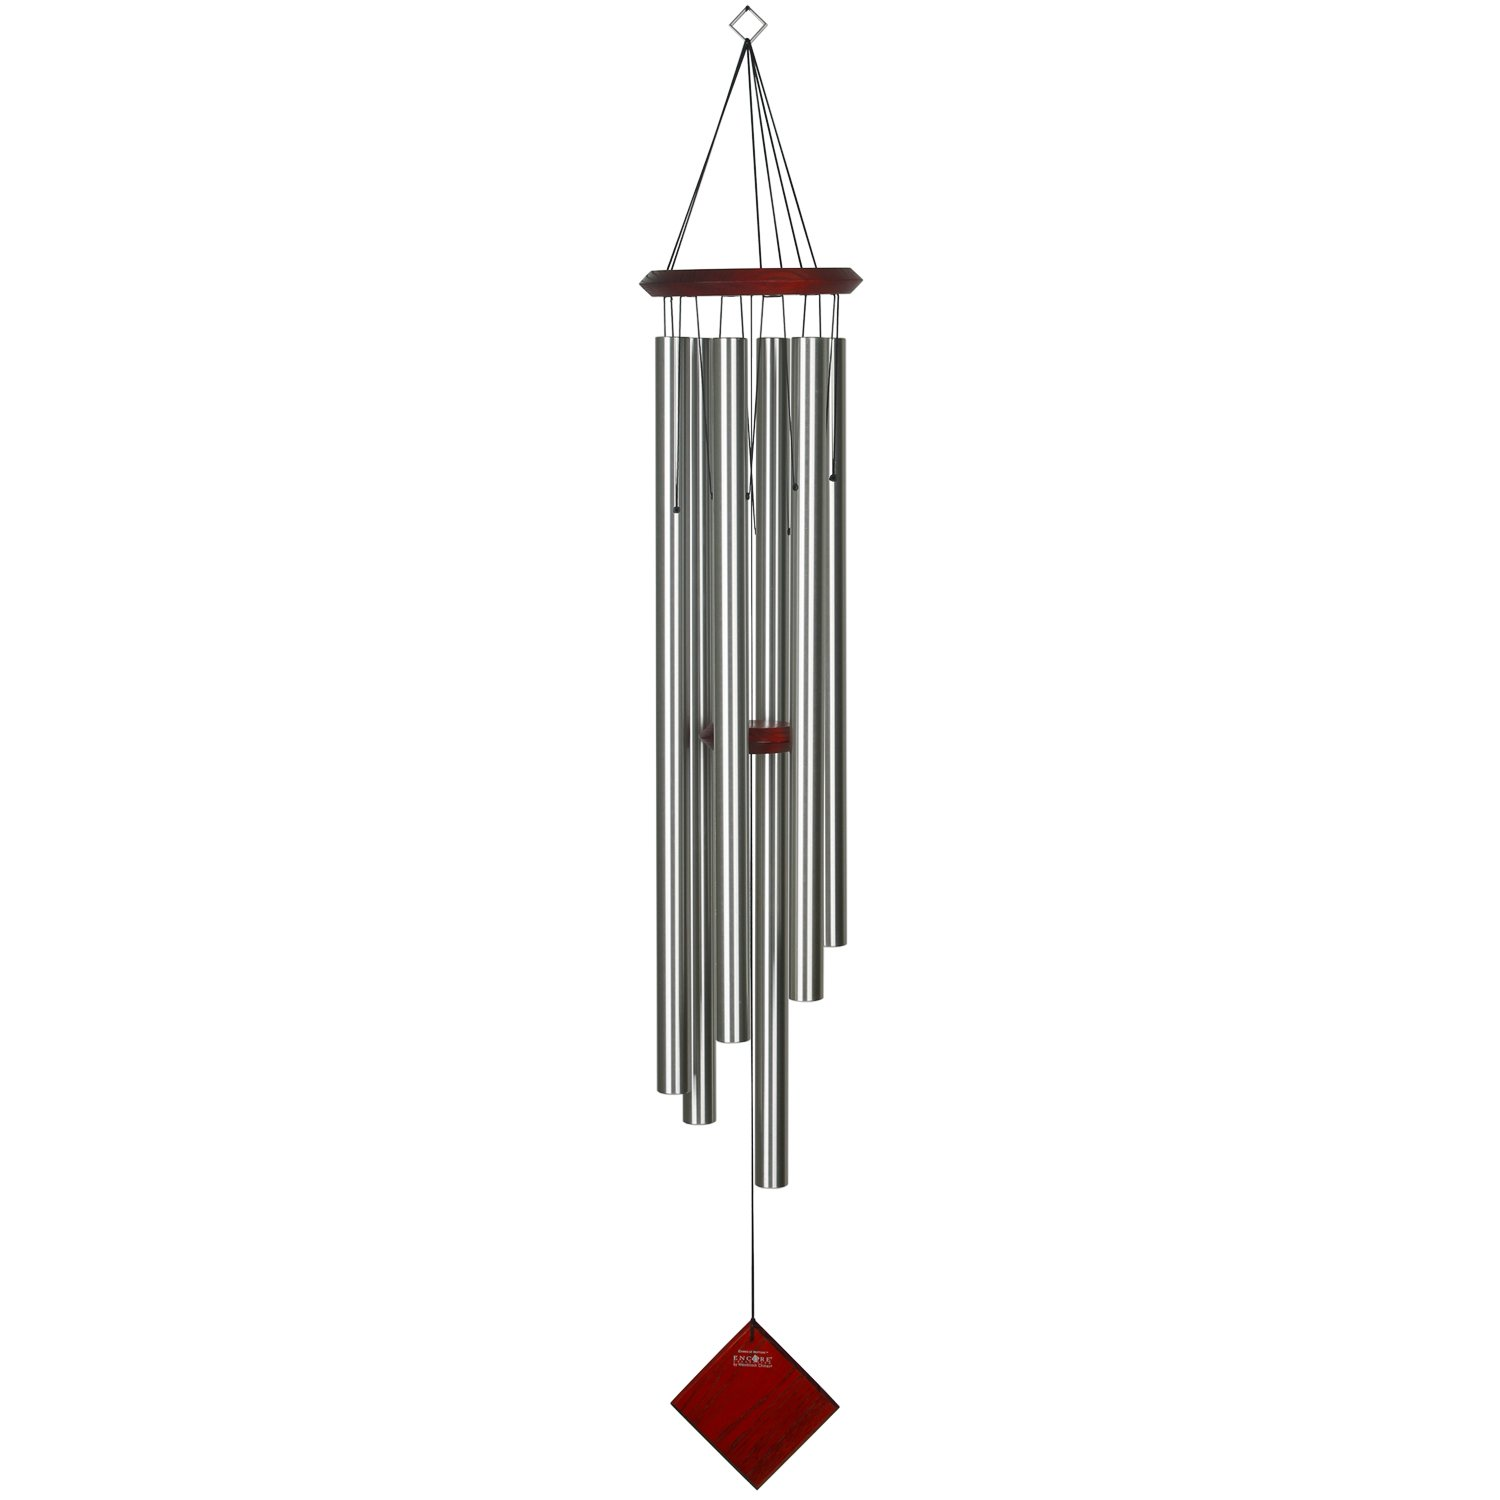 Woodstock Encore Collection Windspiel Silberne Klänge von Neptun Woodstock Chimes DCS54